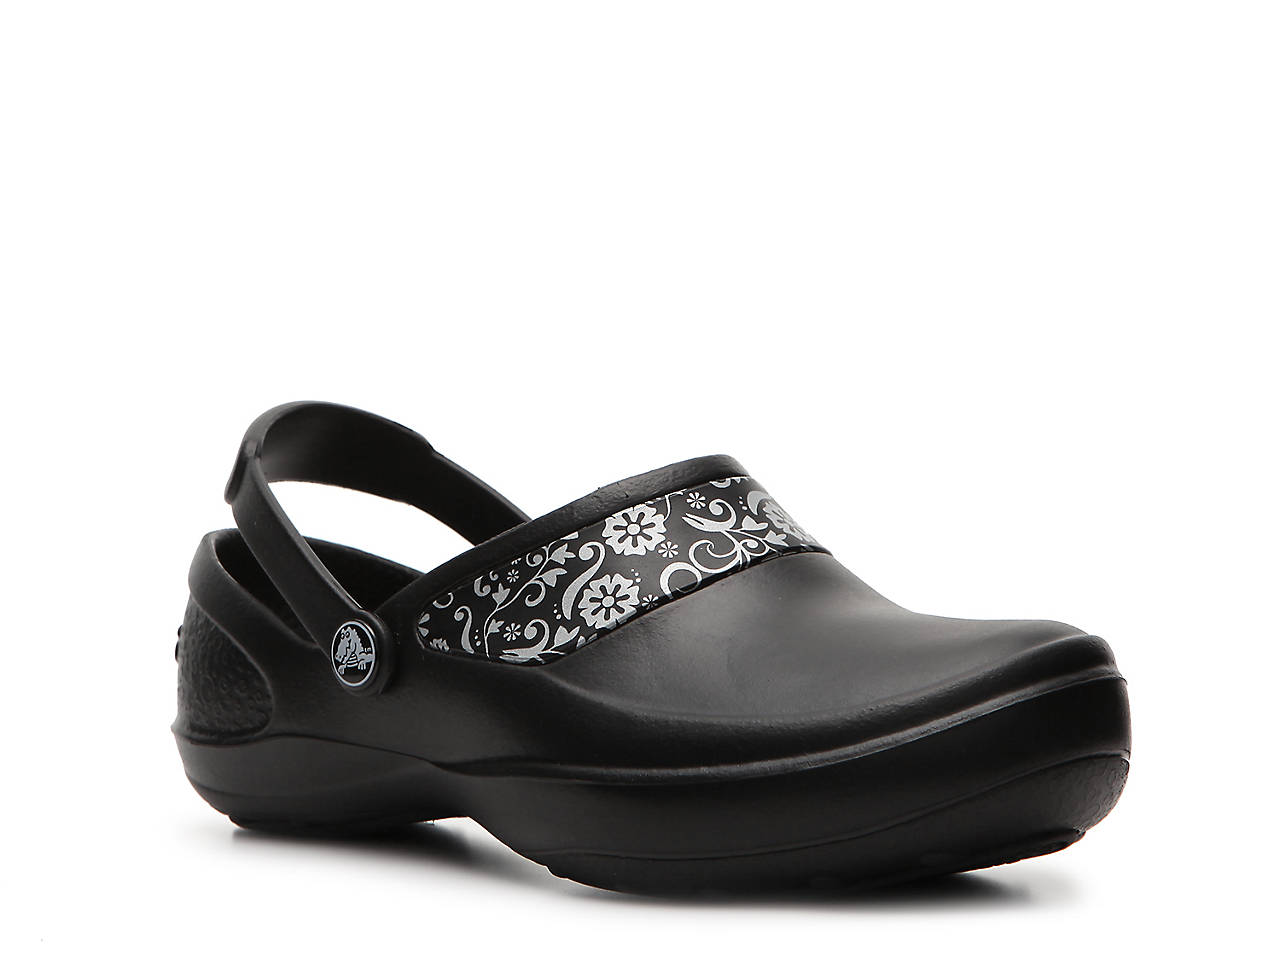 1cad8d8338d54 Crocs Mercy Work Clog Women s Shoes